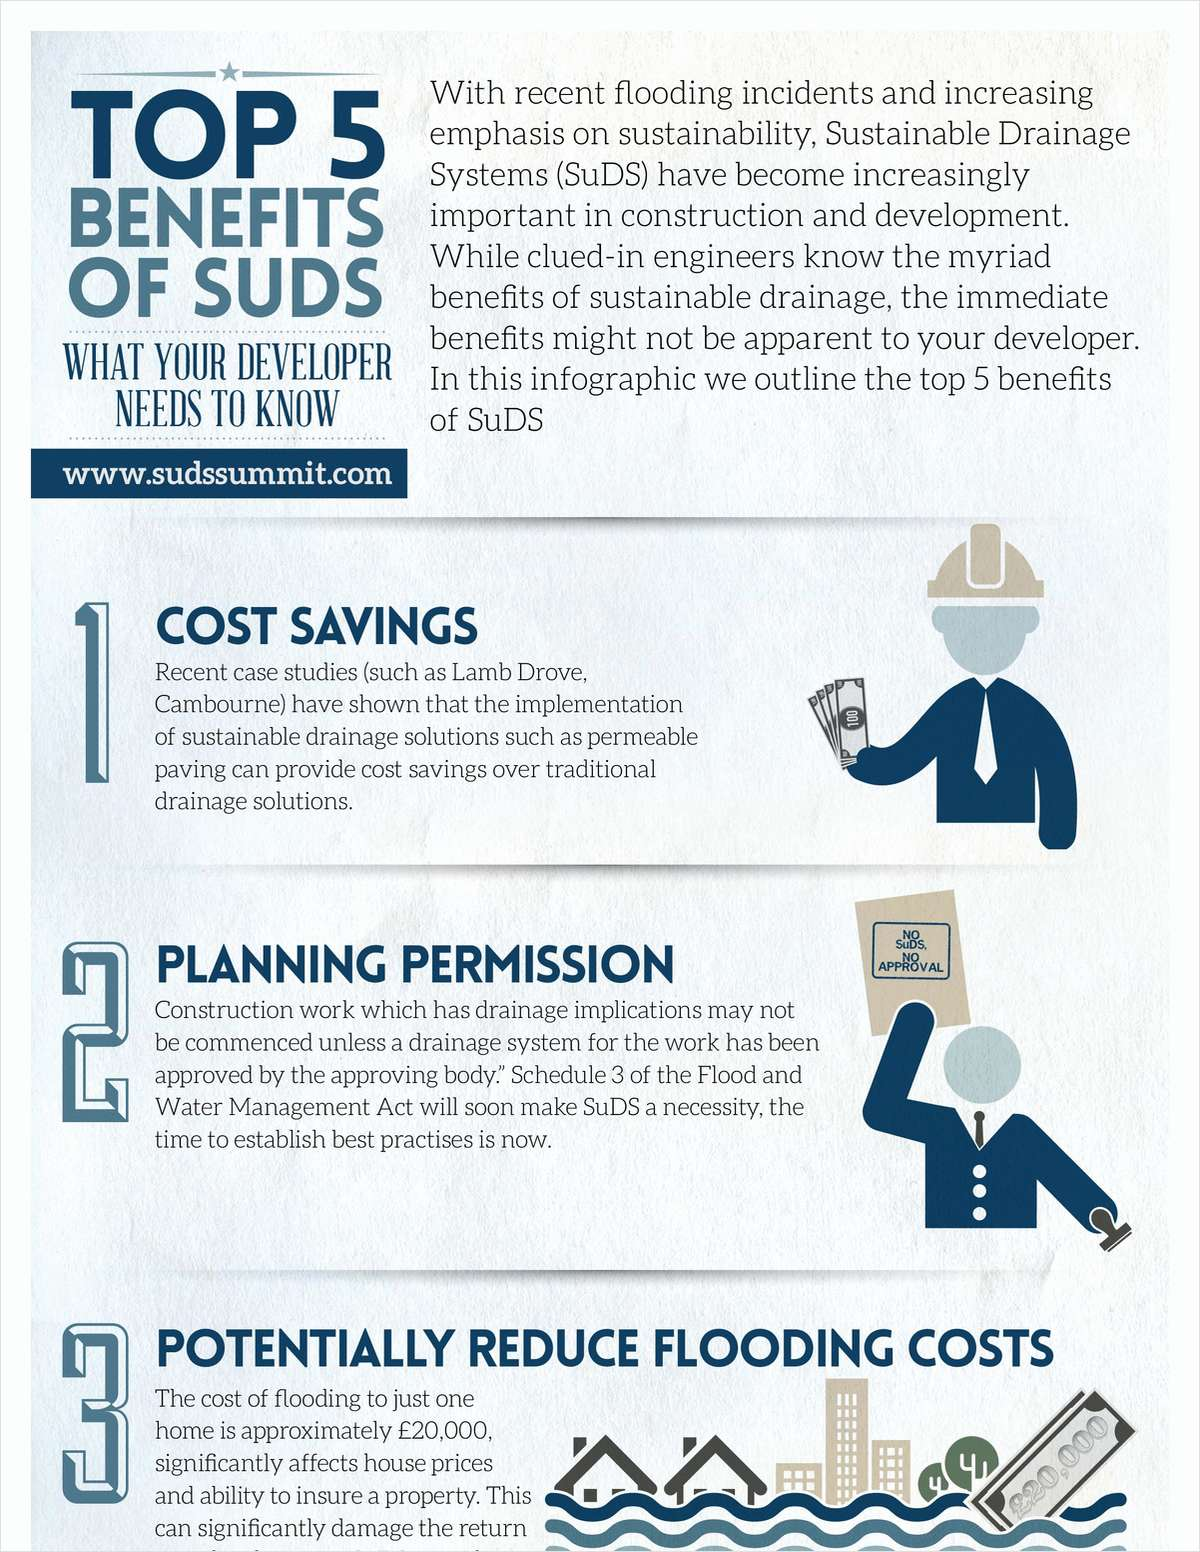 Top 5 Benefits of SuDS - What Your Developer Needs to Know